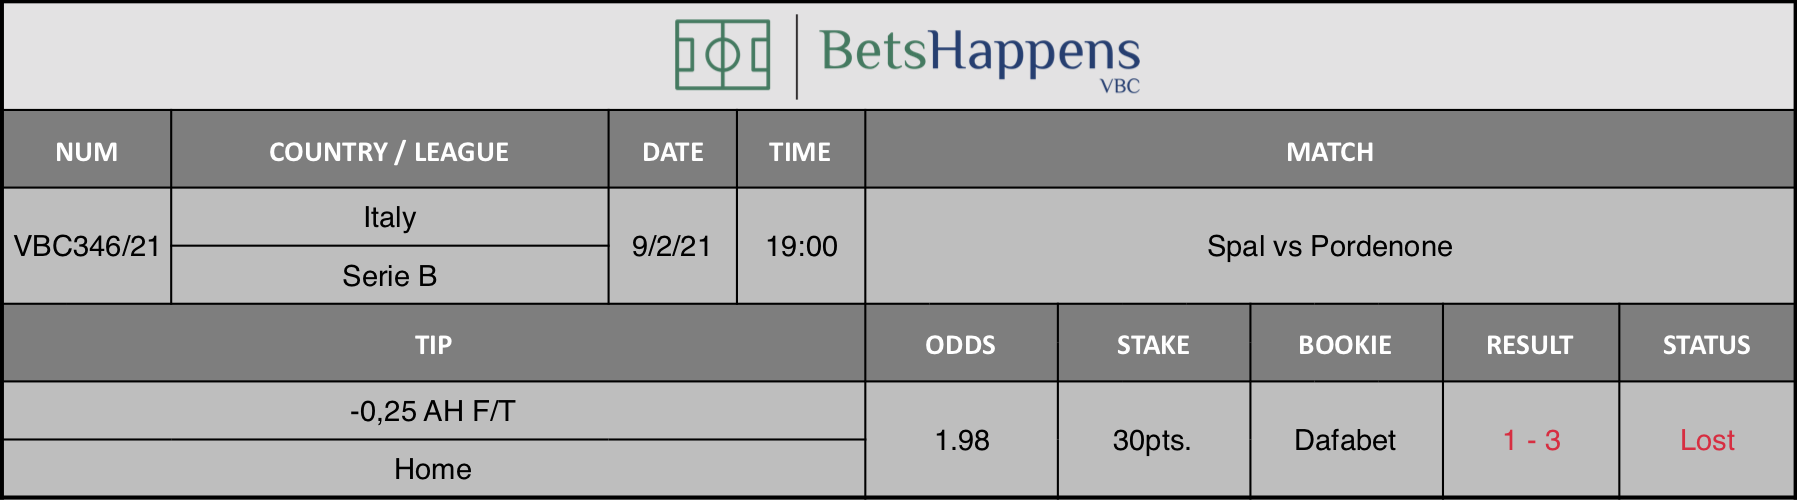 Results of our tip for the Spal vs Pordenone match where -0,25 AH F/T Home is recommended.